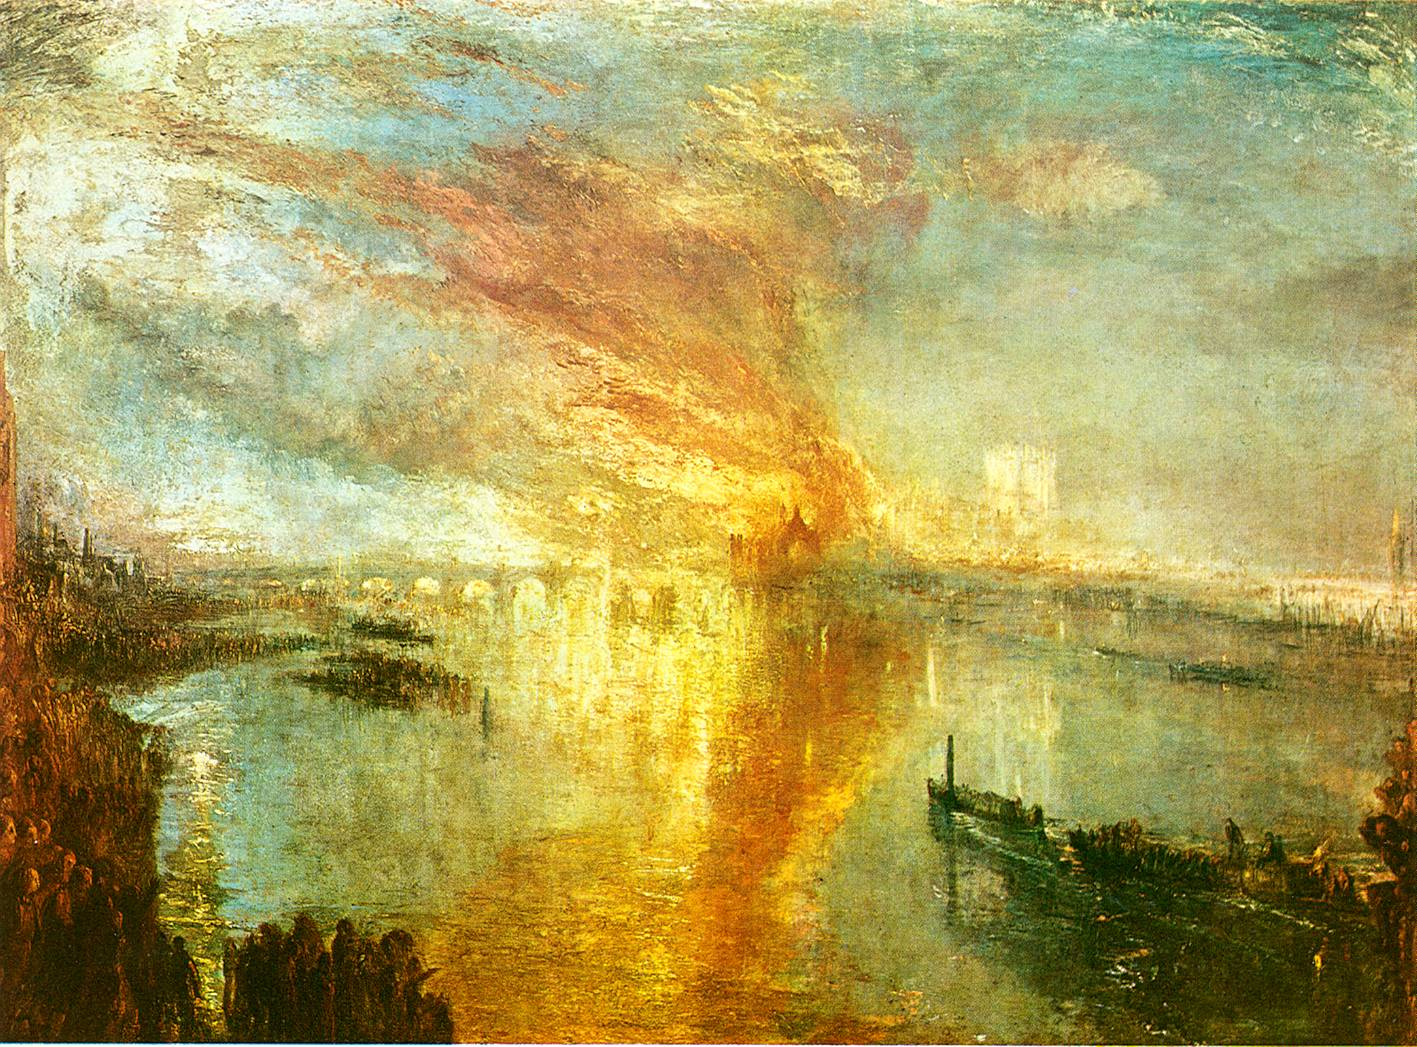 the burning of the parliament building The parliament is nearly swallowed by the raging fire, and only part of the outlines of the buildings can be seen turner mainly focused on the fire rather than buildings the fire and the reflection on water are shown in the middle of the painting.